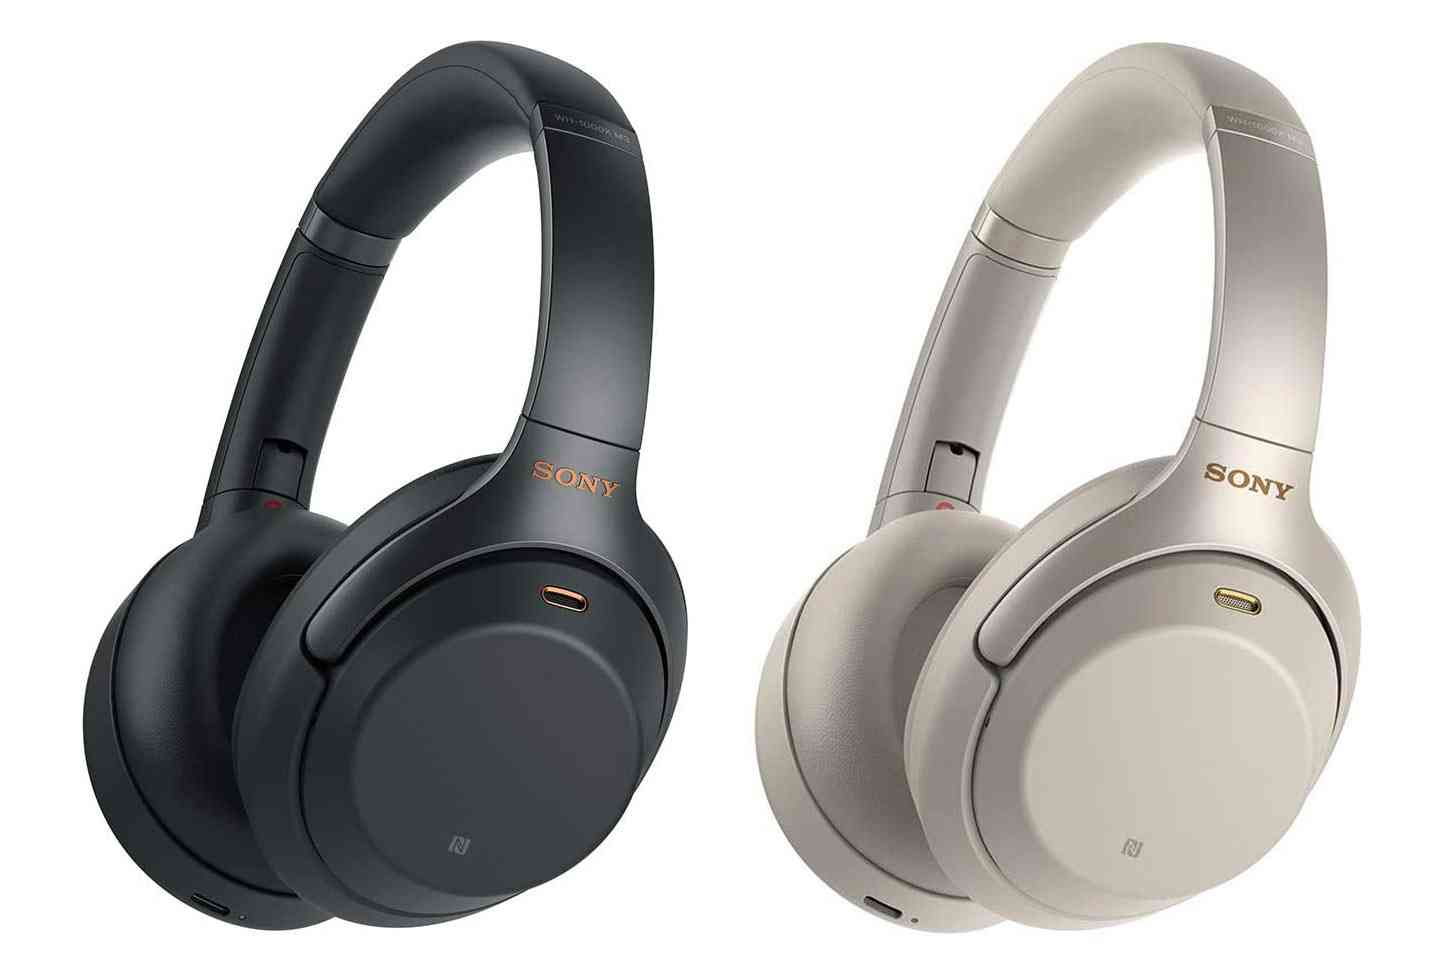 Sony Wh 1000xm3 Noise Canceling Headphones Getting A Large Discount Today Phonedog